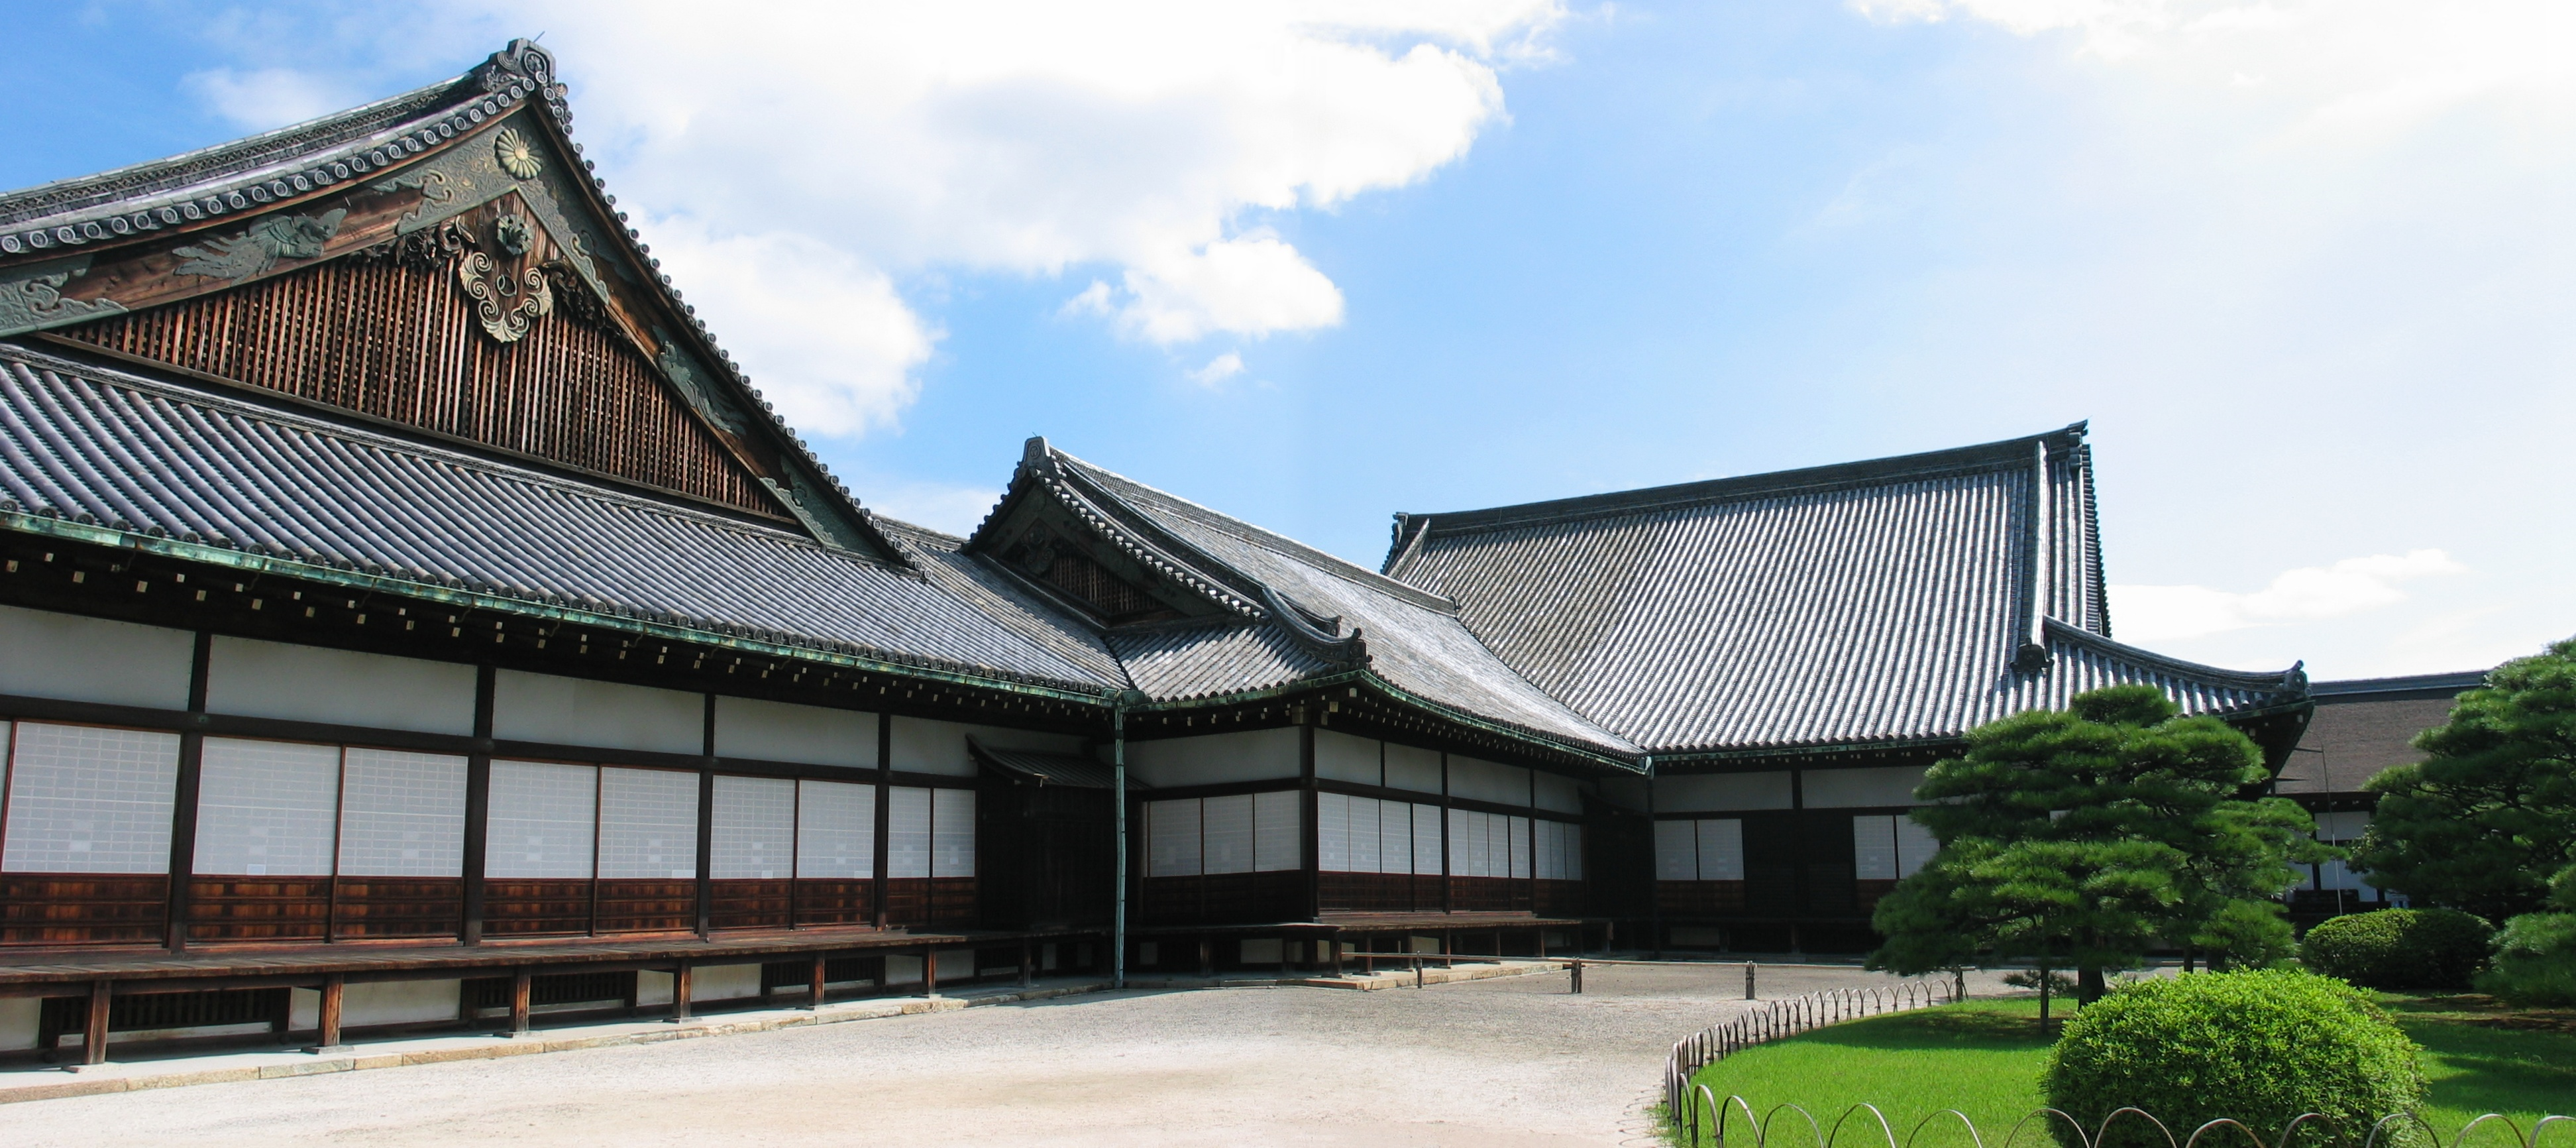 File:Nijo Castle.jpg - Wikipedia